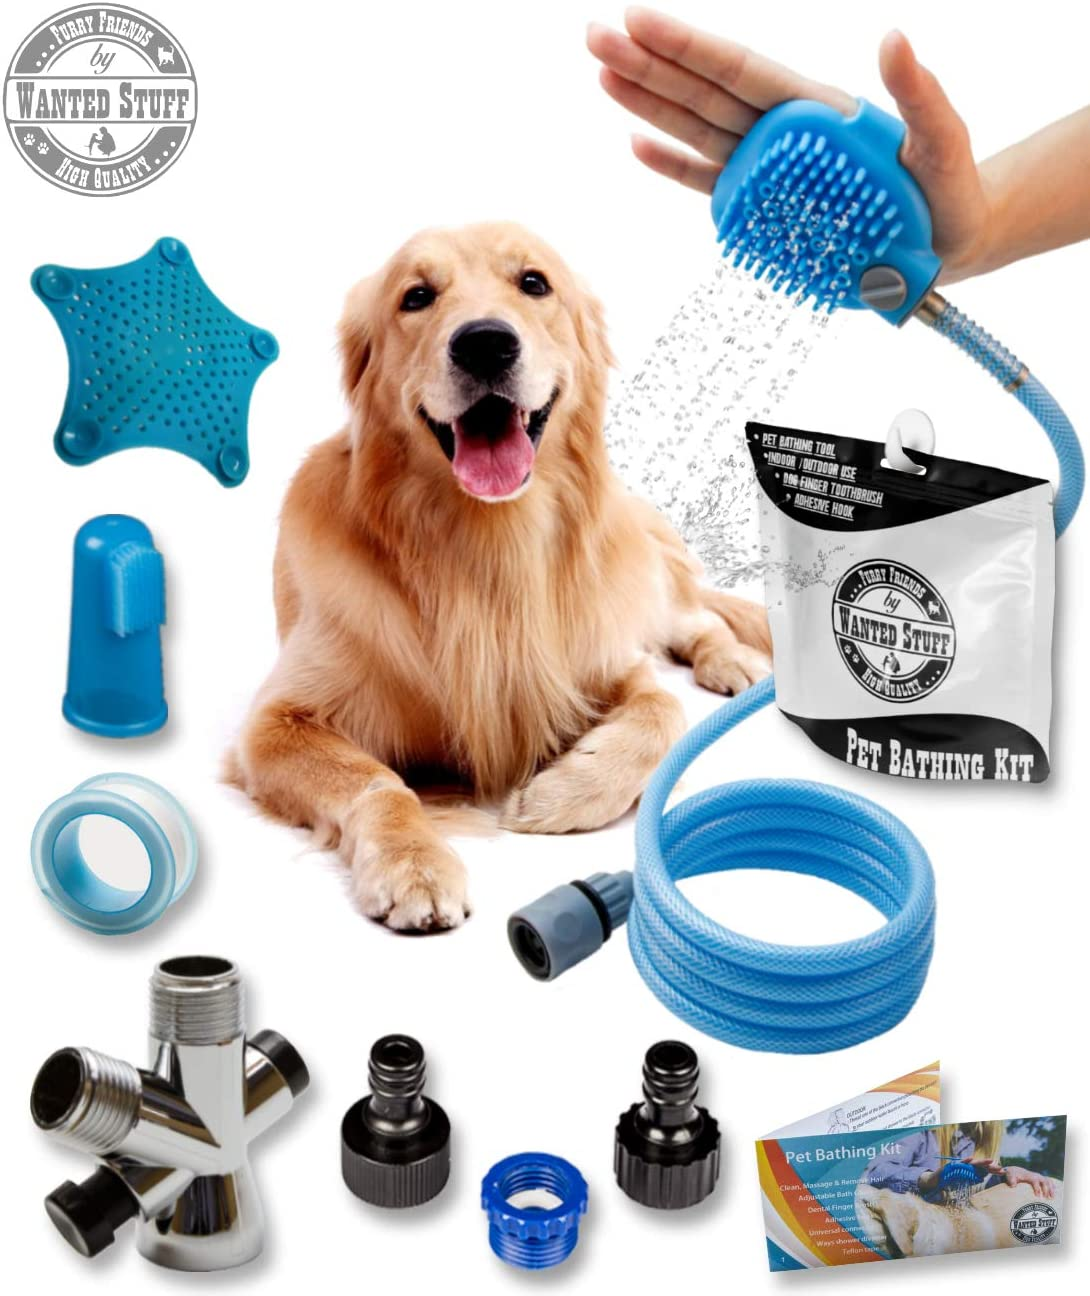 Wantedstuff 3 in 1 Pet Shower Kit with Free Dental Finger Brush | Dog Shower Sprayer, Adjustable Bath Glove, Clean, Massage & Remove Hair | Shower Attachment for Indoor & Outdoor Use | Pet-Friendly